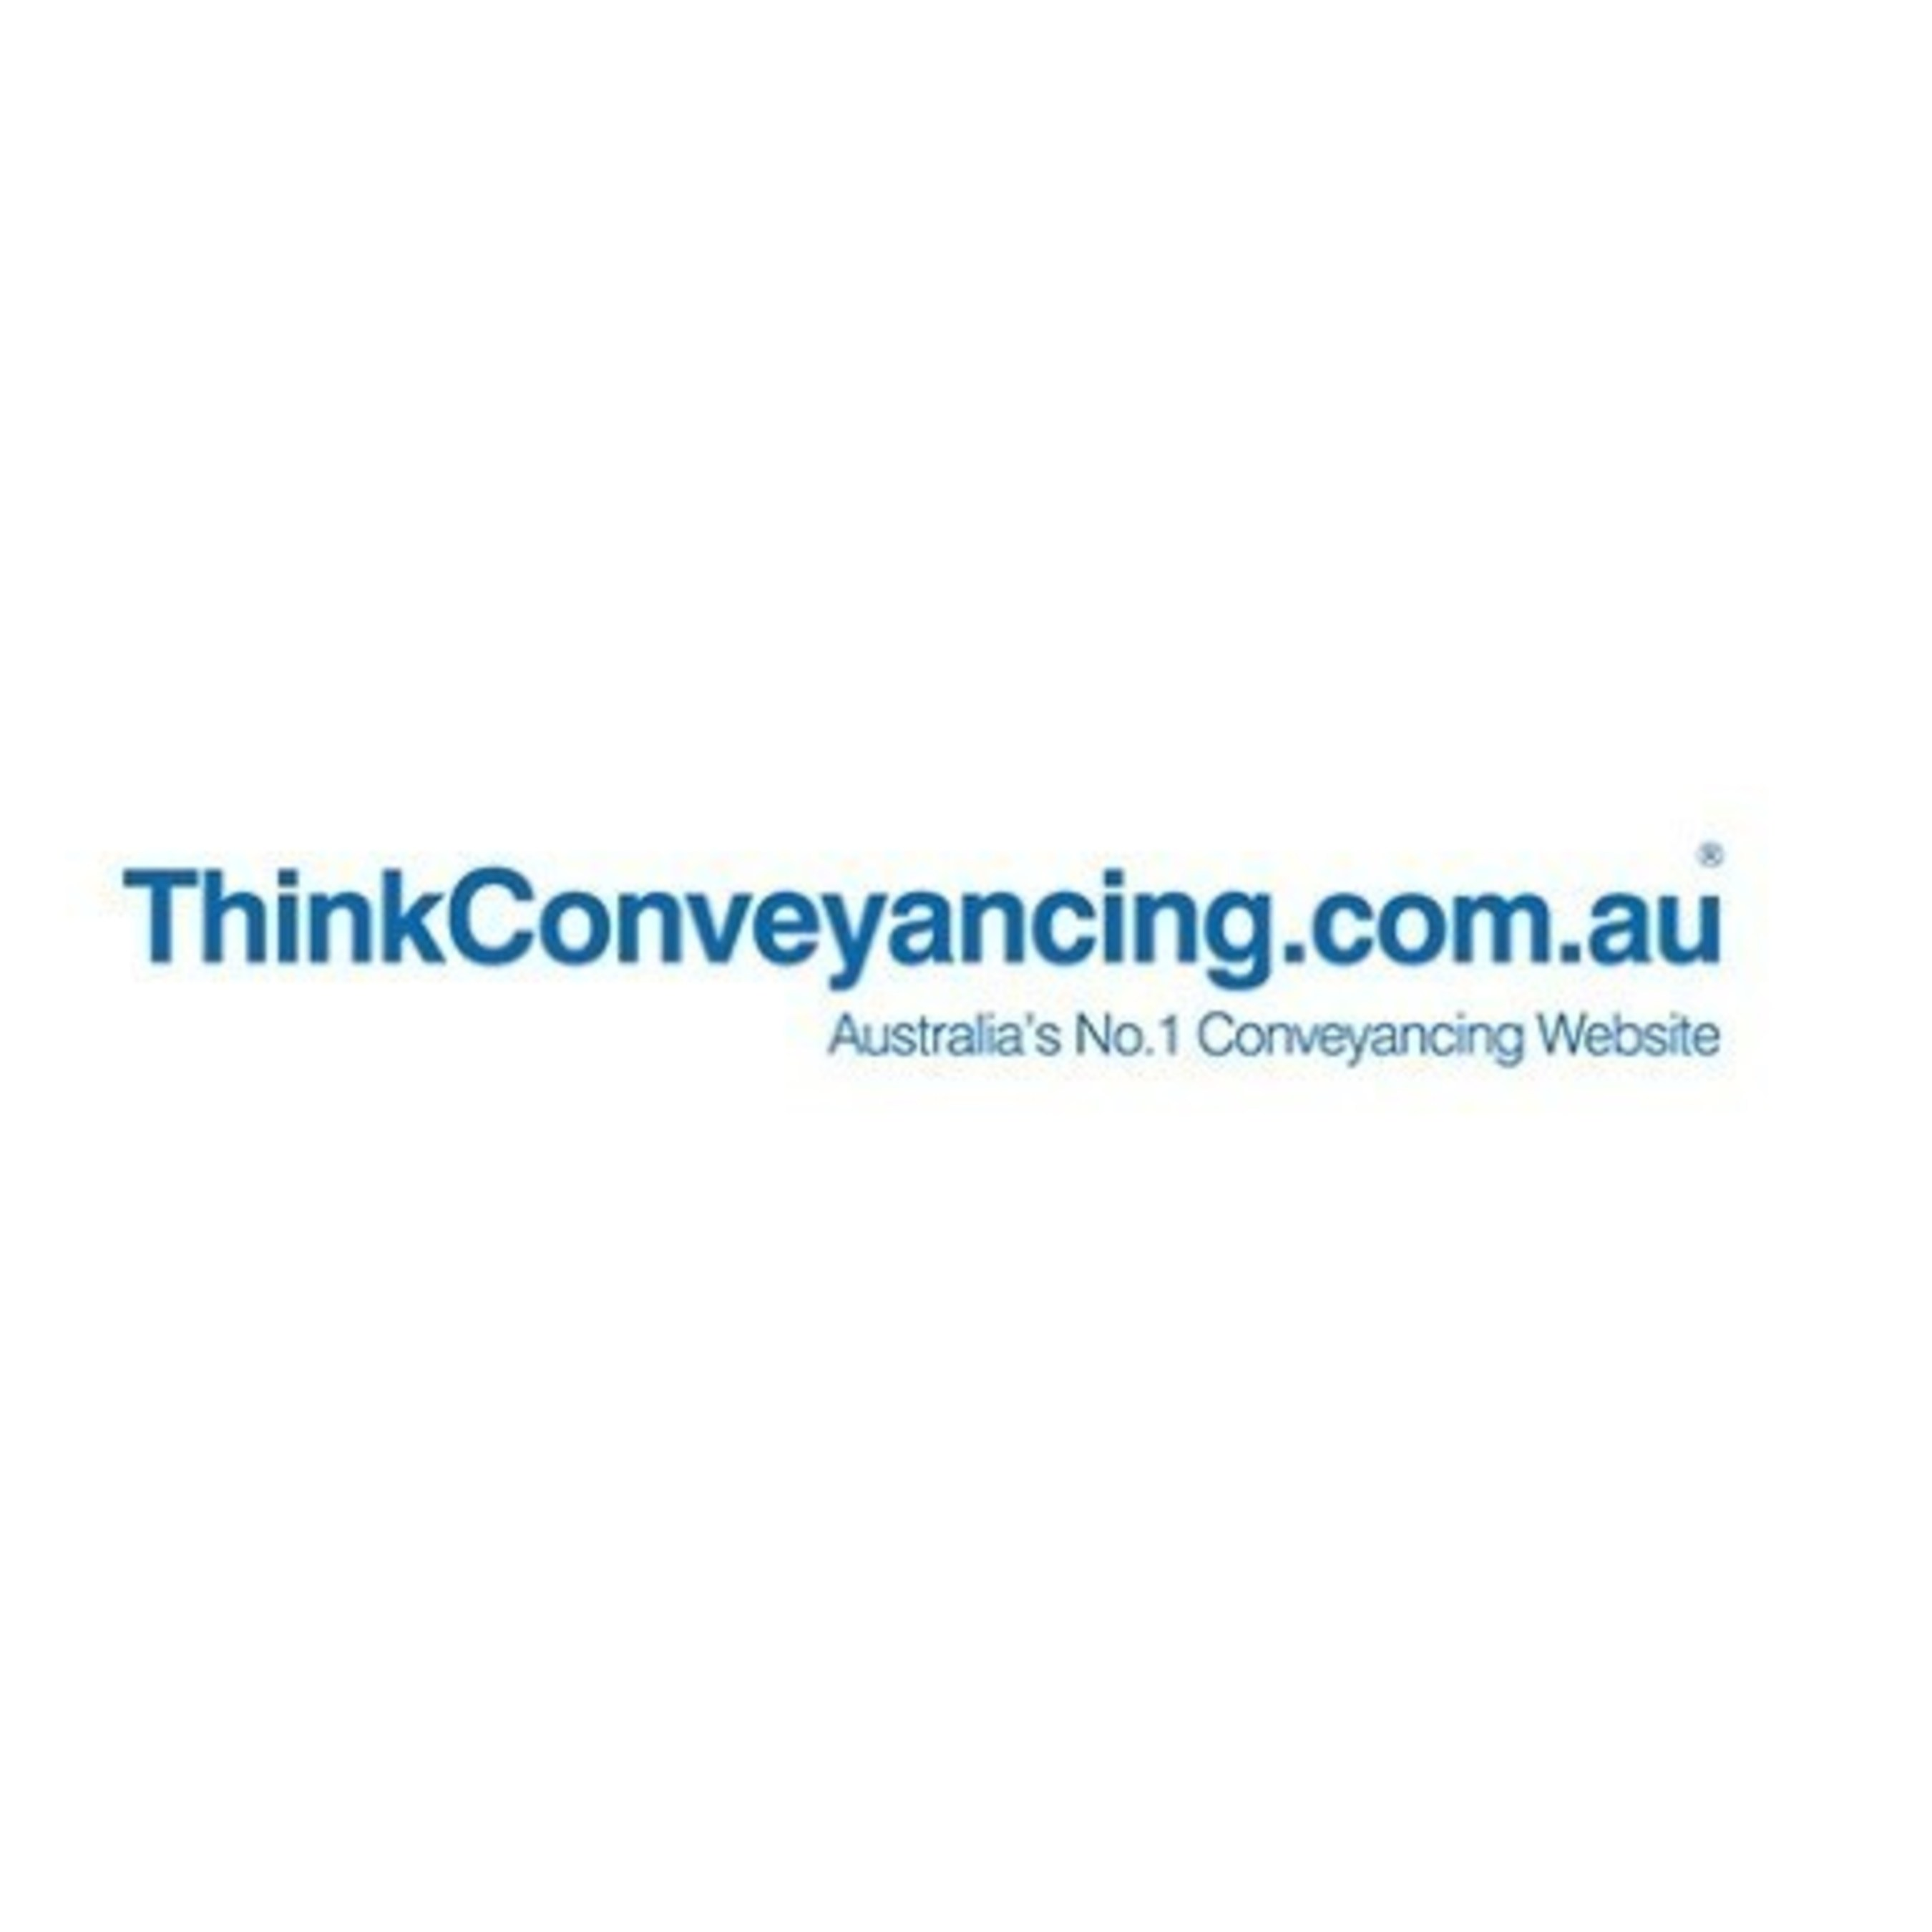 Think Conveyancing Announces the Release of the New Stamp Duty Calculator